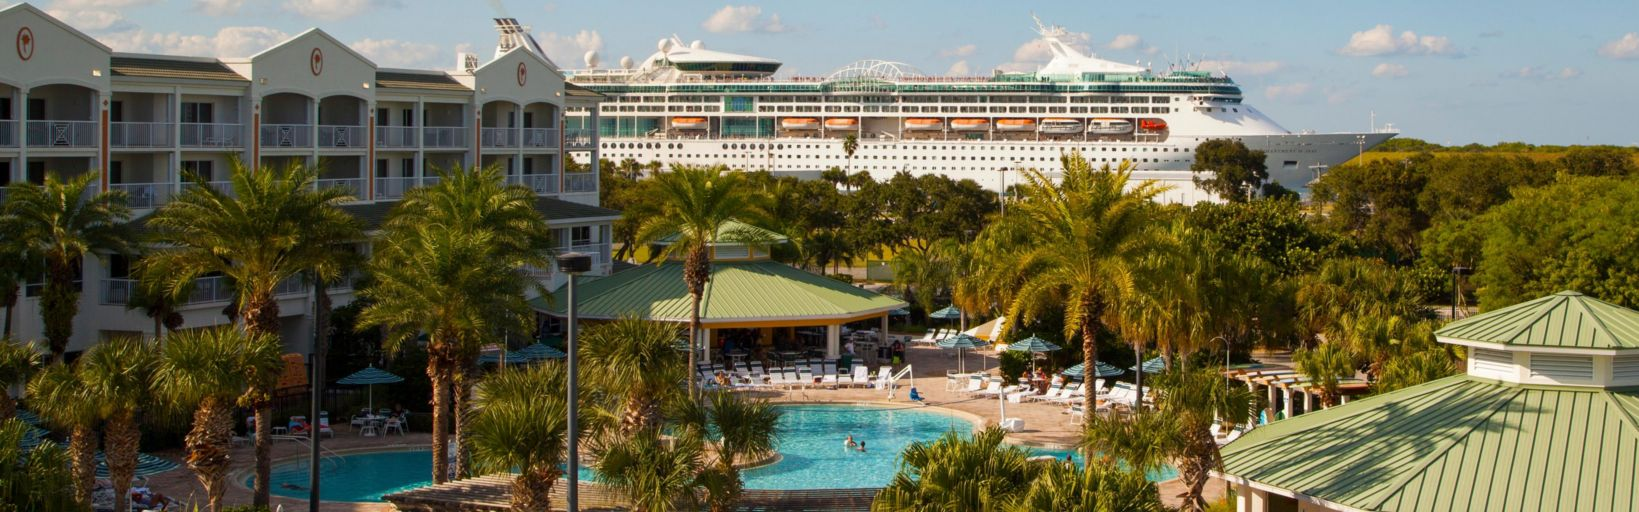 Cape Canaveral Beach Resort Guests Can Watch The Excitement Of Large Cruise Ships